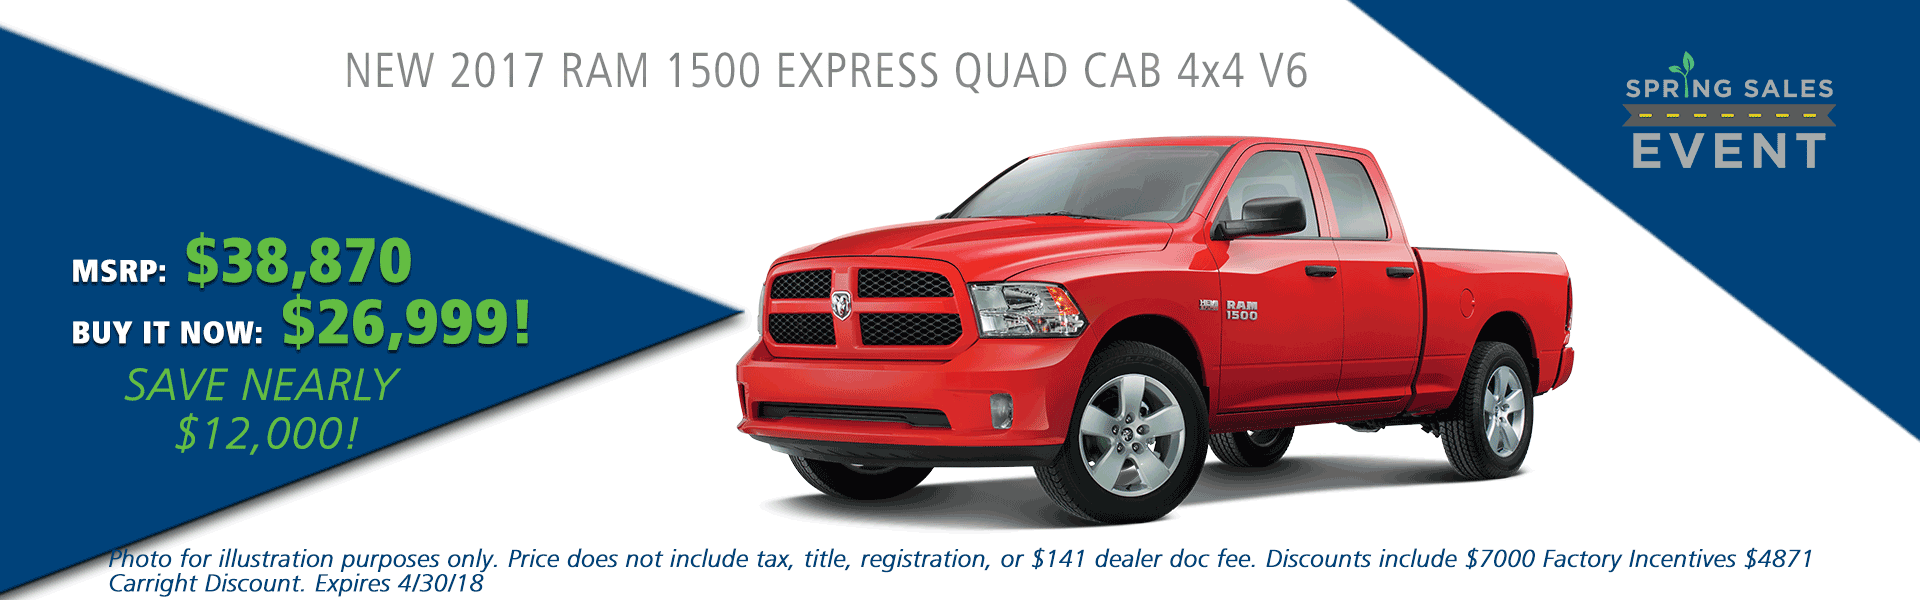 NEW 2017 RAM 1500 EXPRESS QUAD CAB® 4X4 6'4 BOX carright auto 5408 university blvd moon, pa 15108 chrysler dodge jeep ram